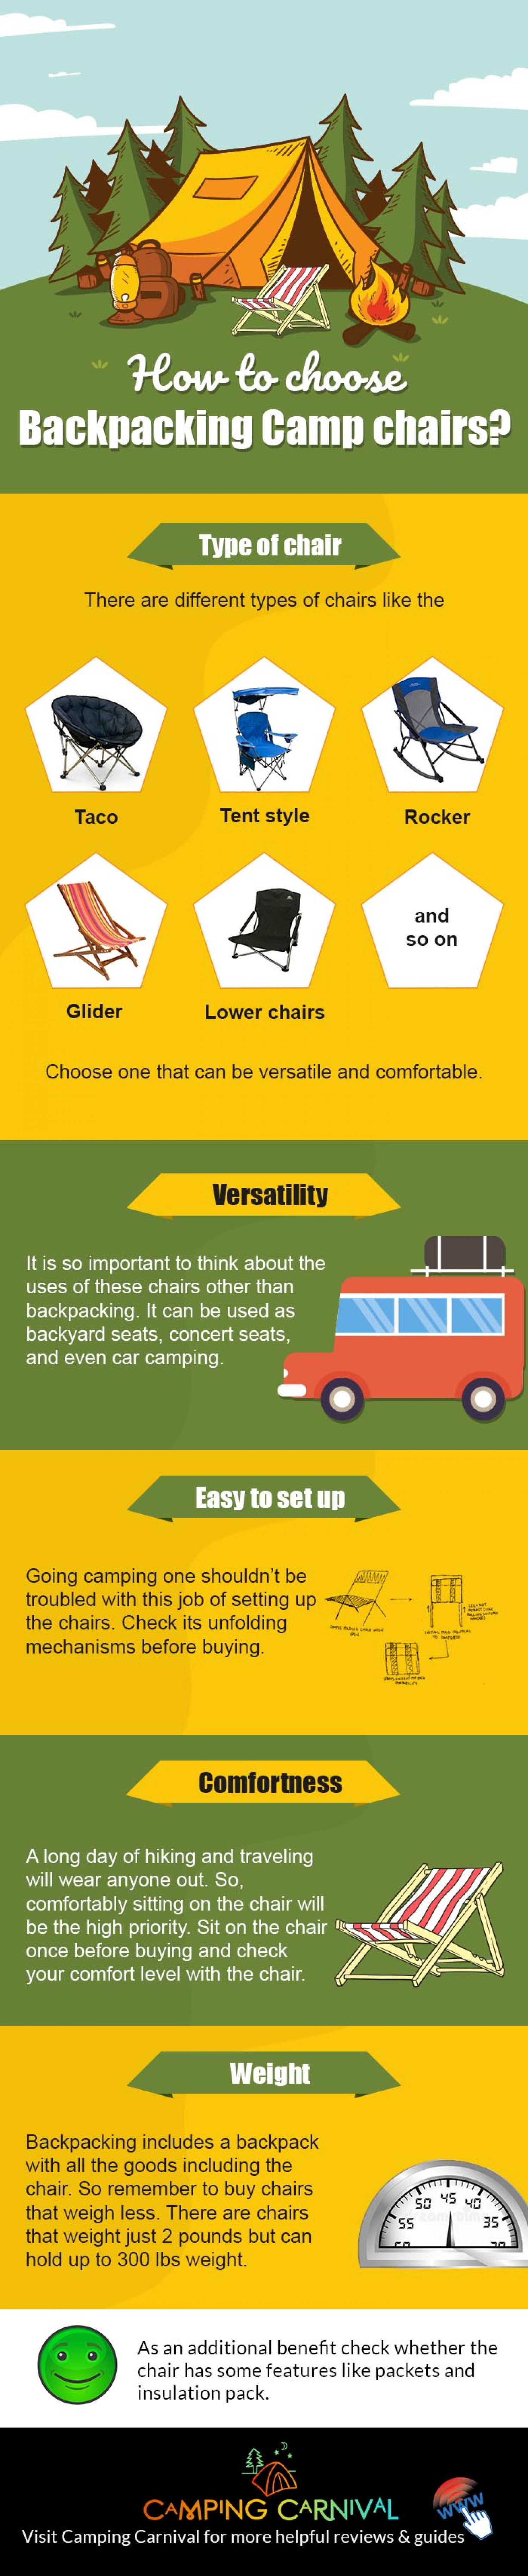 How to Choose Backpacking Camp Chairs Infographic